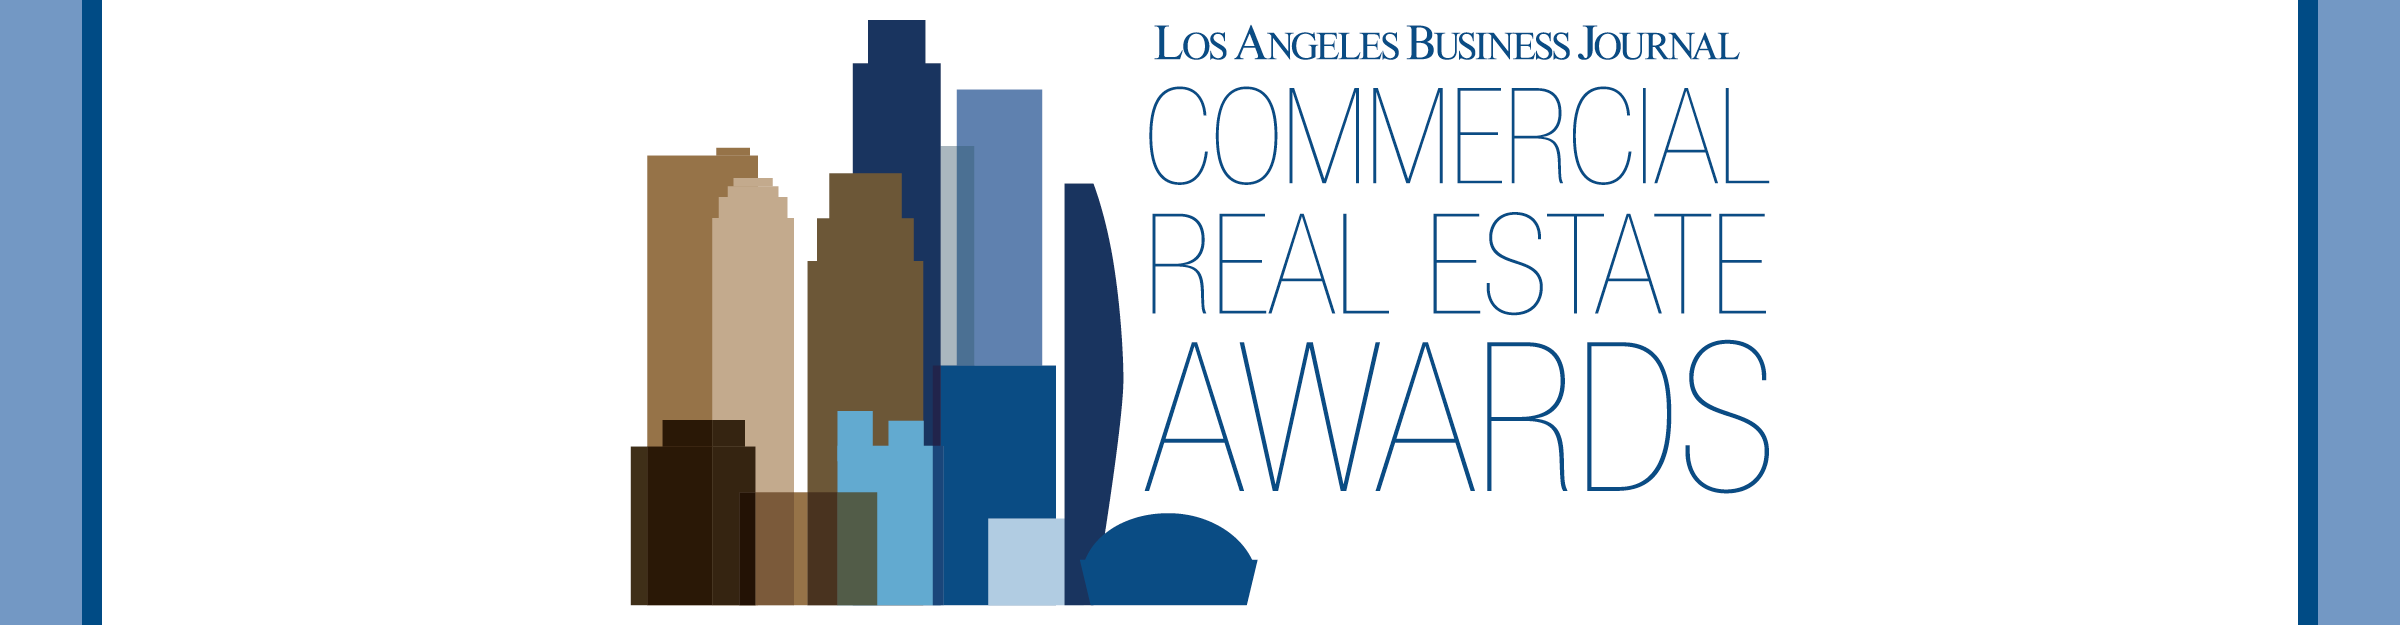 Los Angeles Business Journal Commercial Real Estate Awards Event Banner